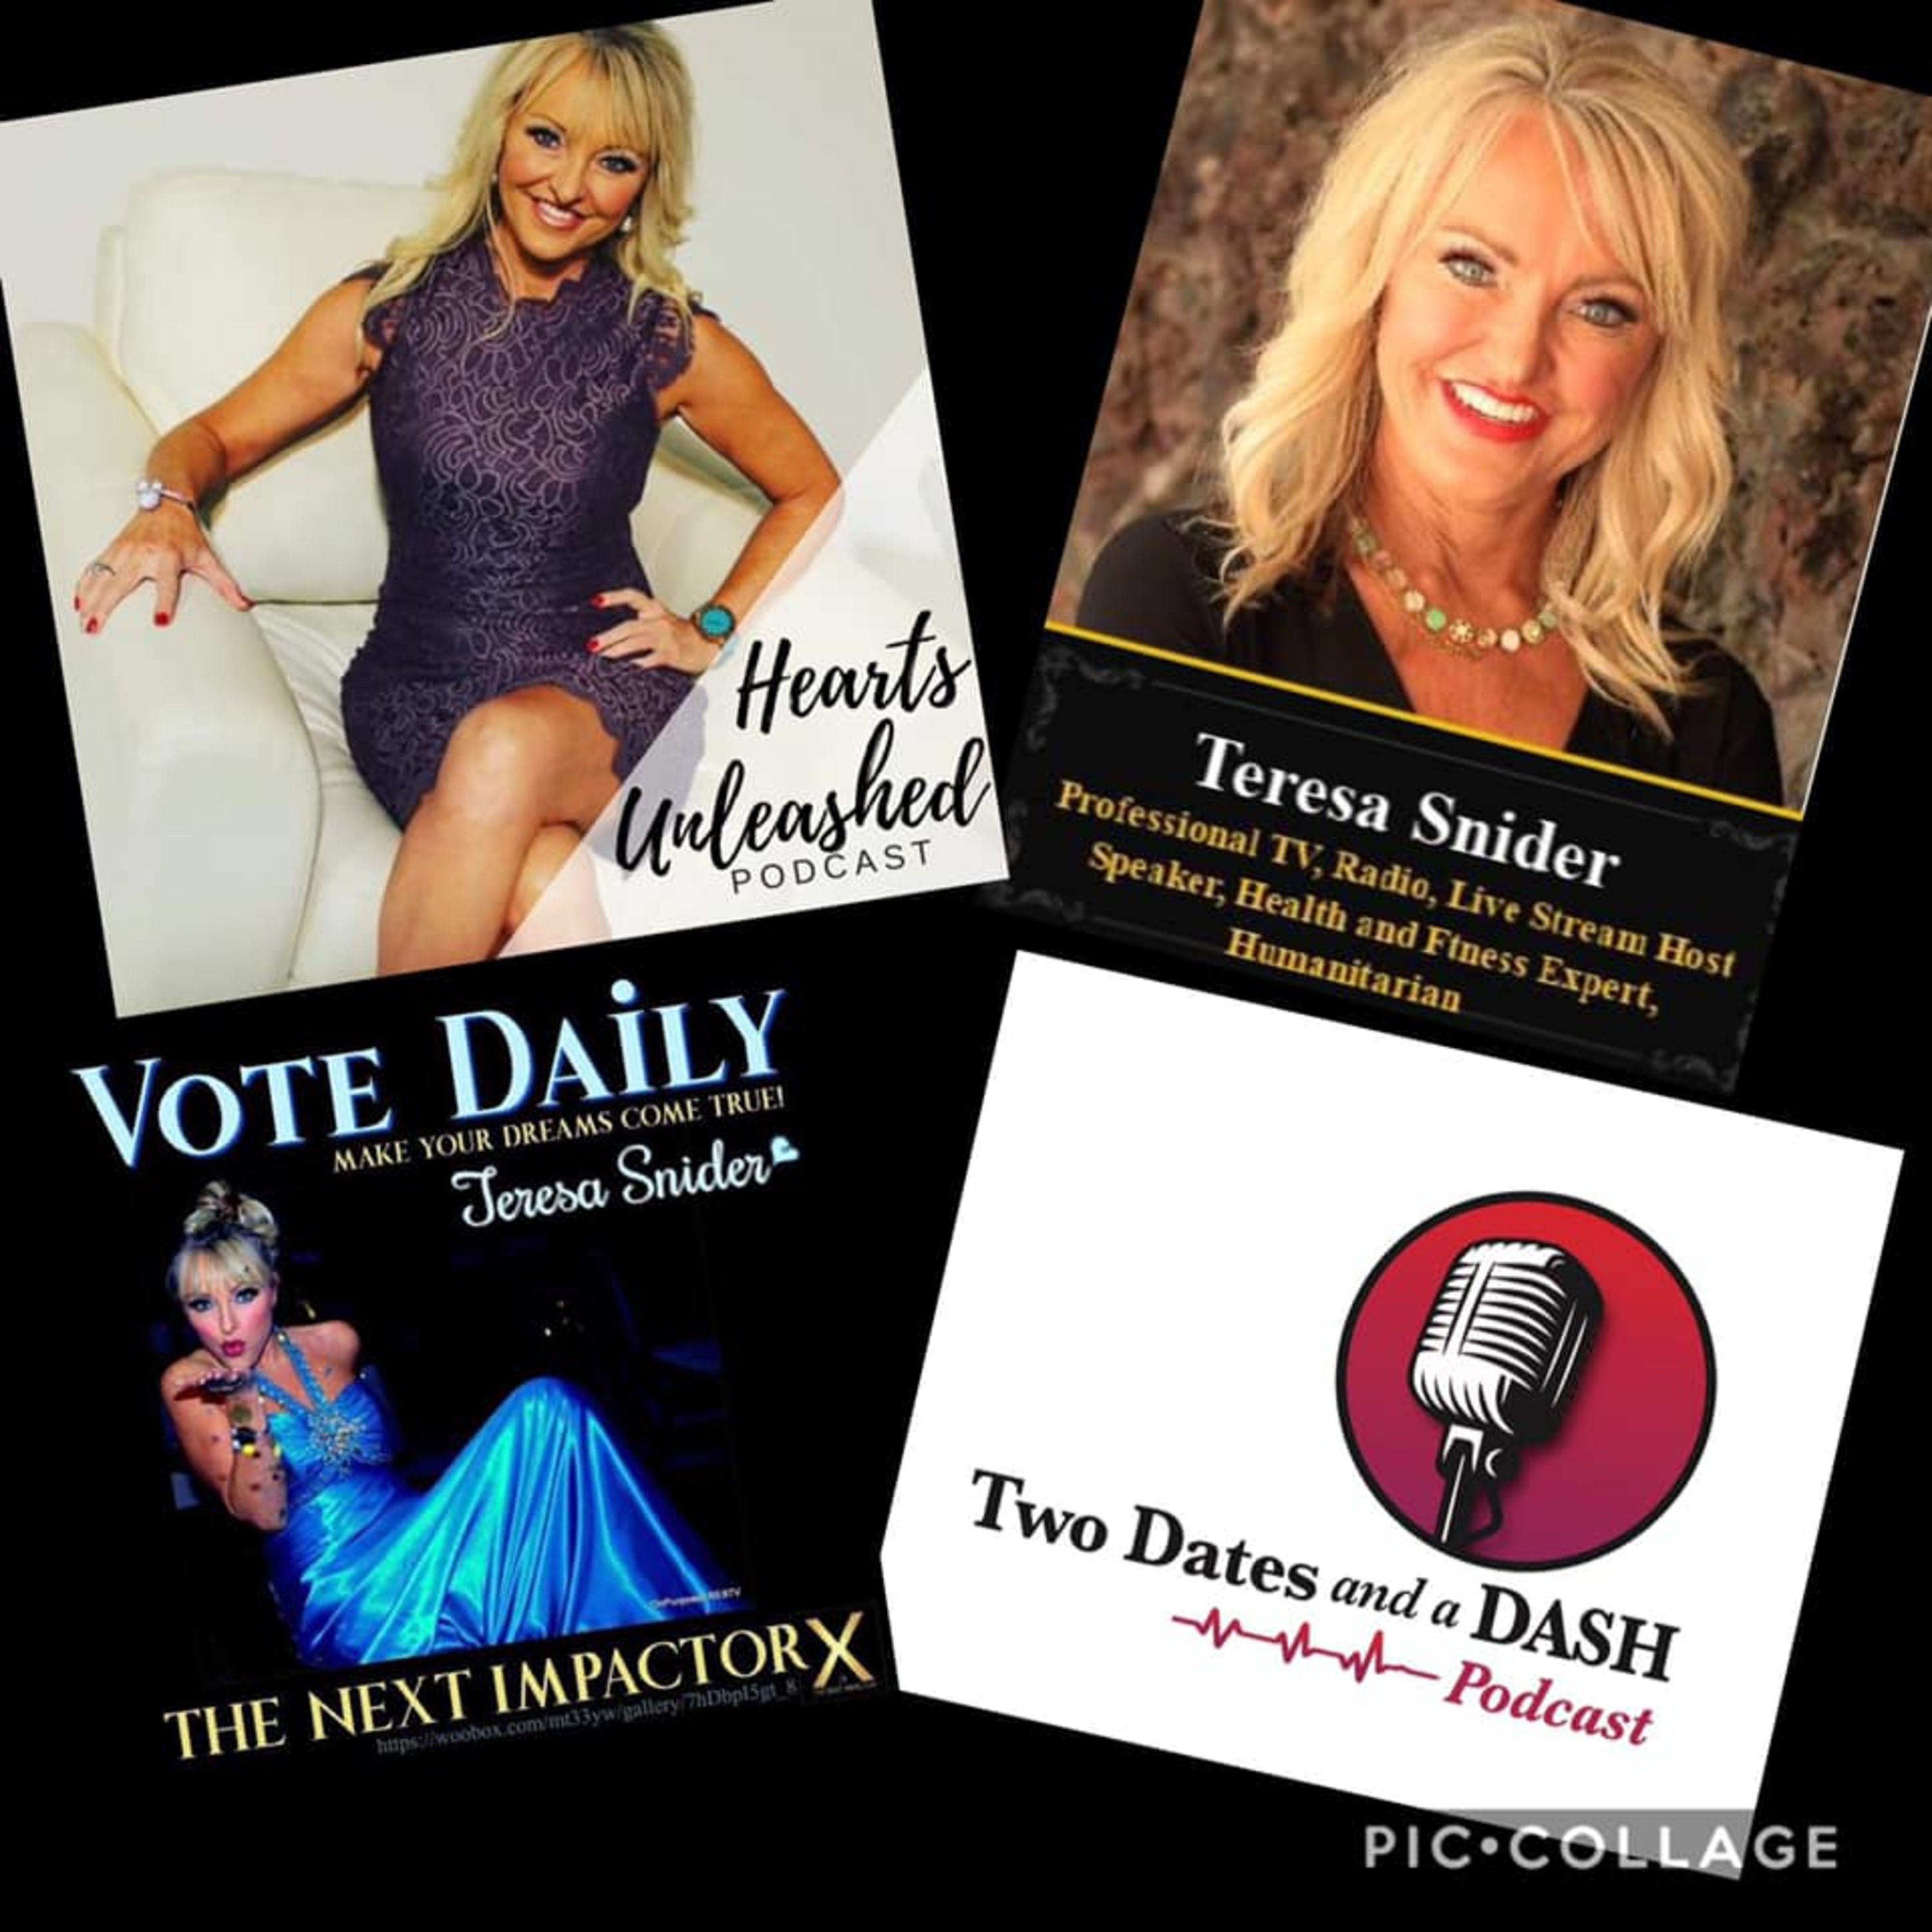 Two Dates and a Dash Podcast Episode 53: Speaker, TV, Radio and Podcast Host, Teresa Snider